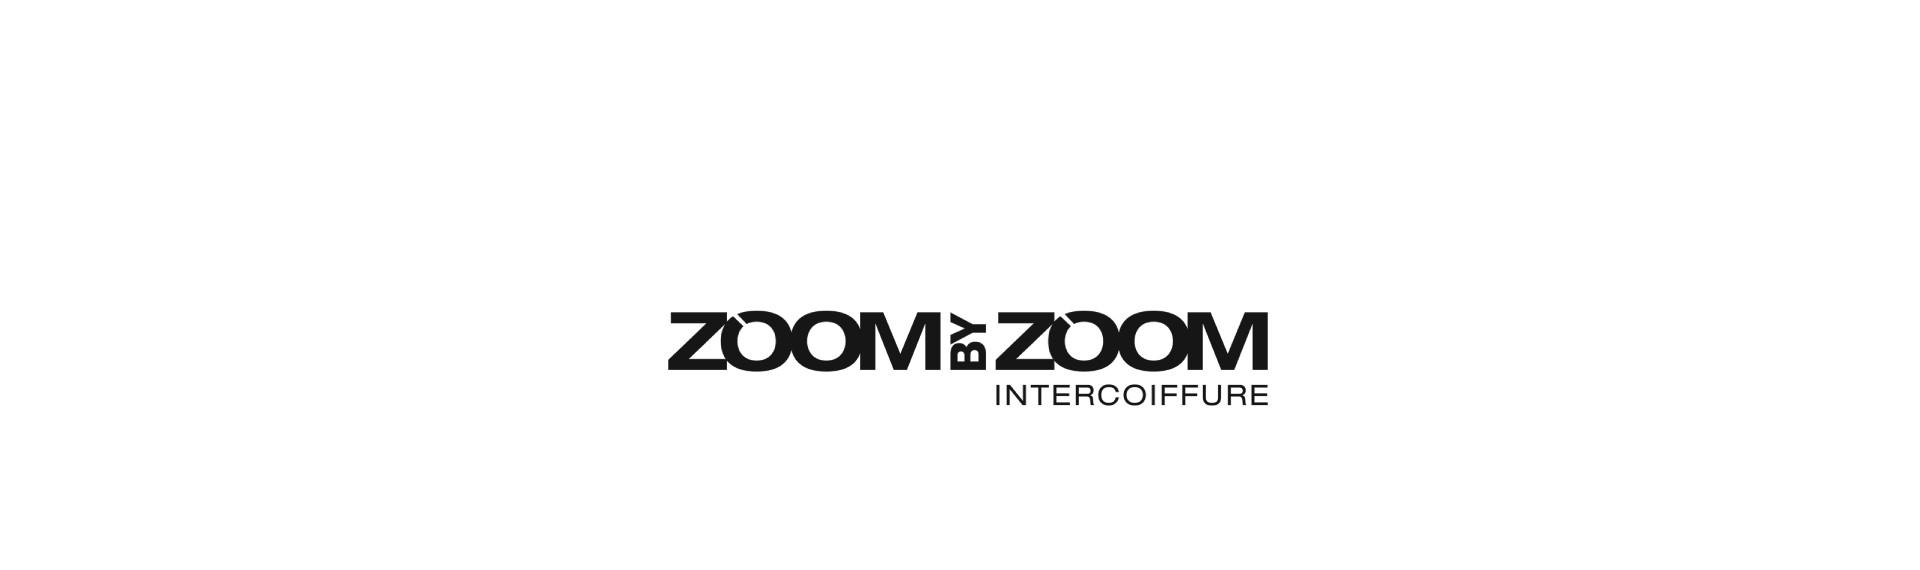 Teleboxen_reference_Zoom_by_Zoom_3.jpg